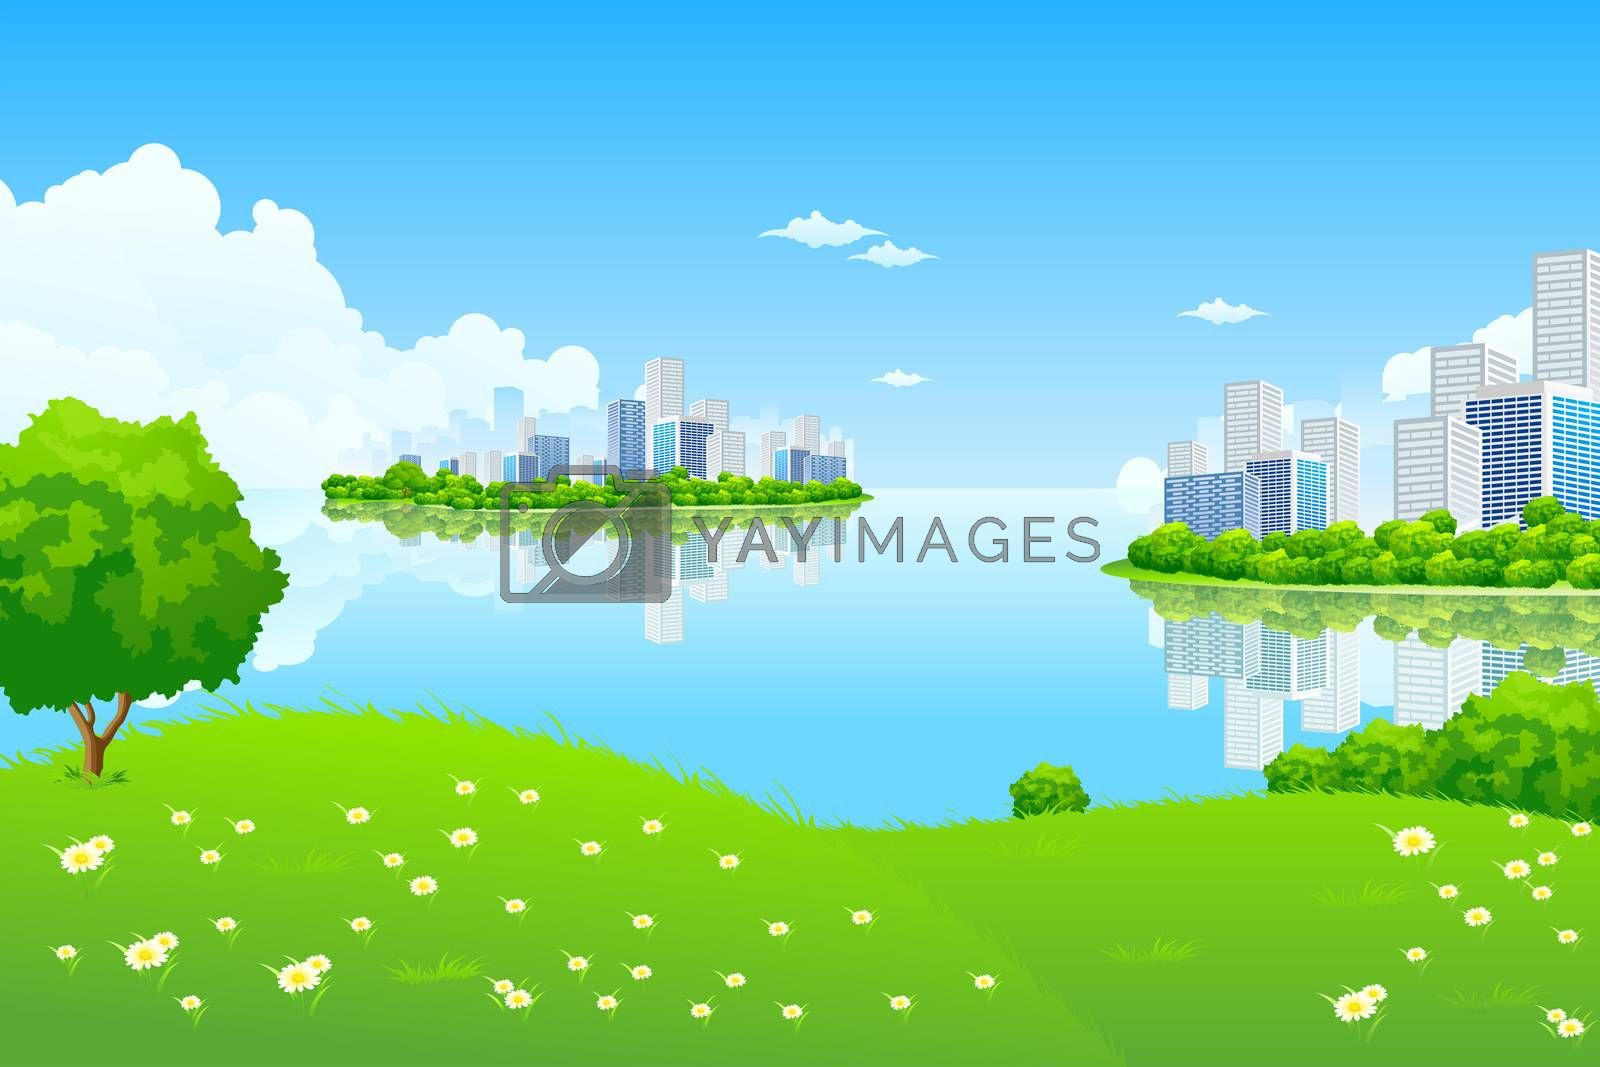 Green City Landscape by WaD